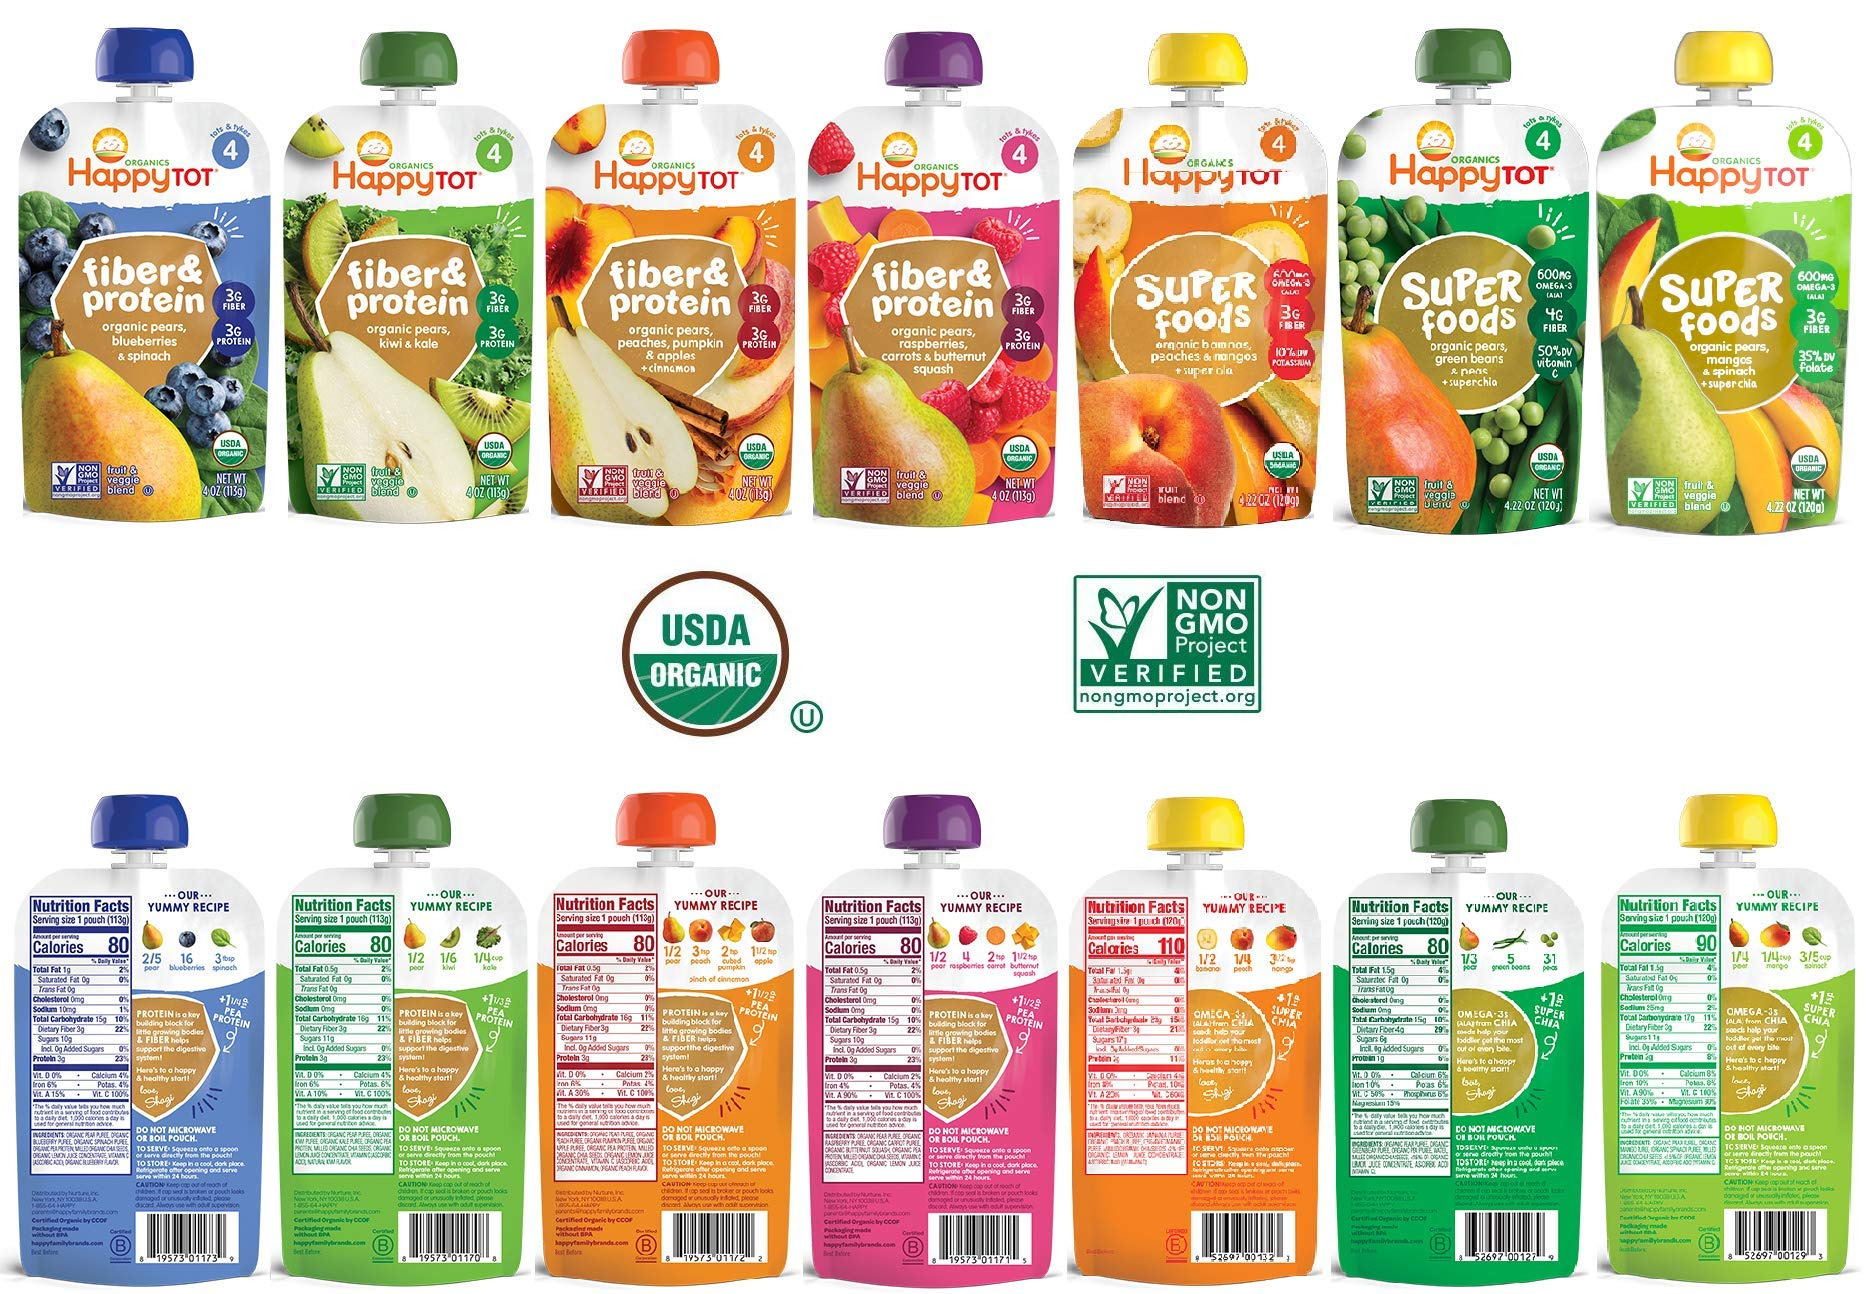 Happy Tot Organic Superfoods and Fiber&Protein Stage 4 Baby Food Assortment Variety Packs 7 Flavors (Pack of 14)